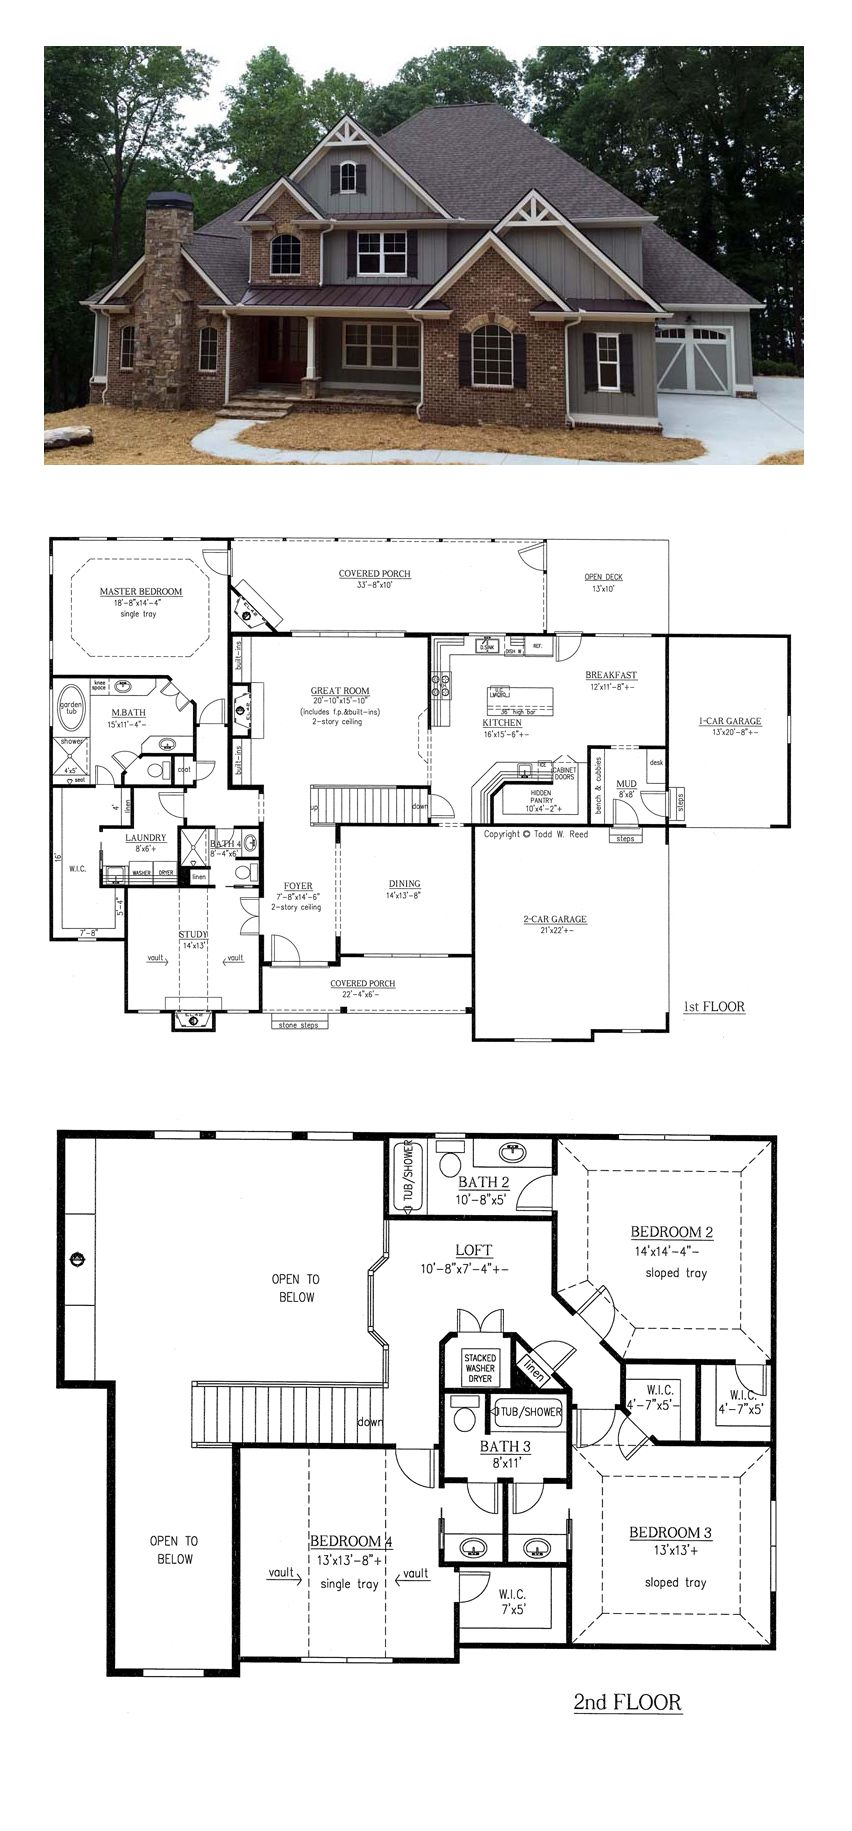 French country house plan 50263 total living area 3290 sq ft 4 bedrooms and 4 bathrooms - Country house floor plans ...